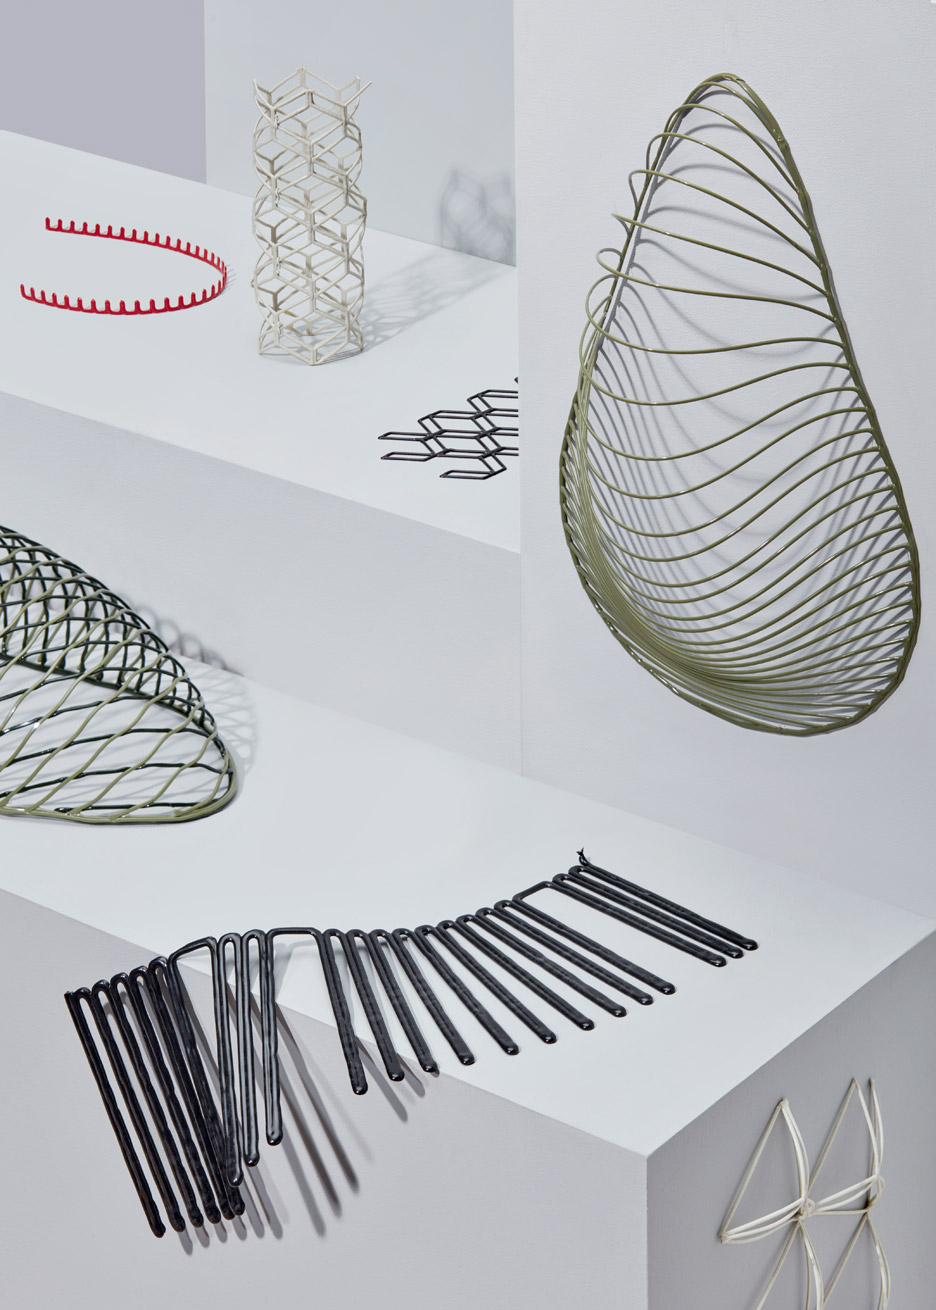 Envisions exhibition by Design Academy Eindhoven graduates